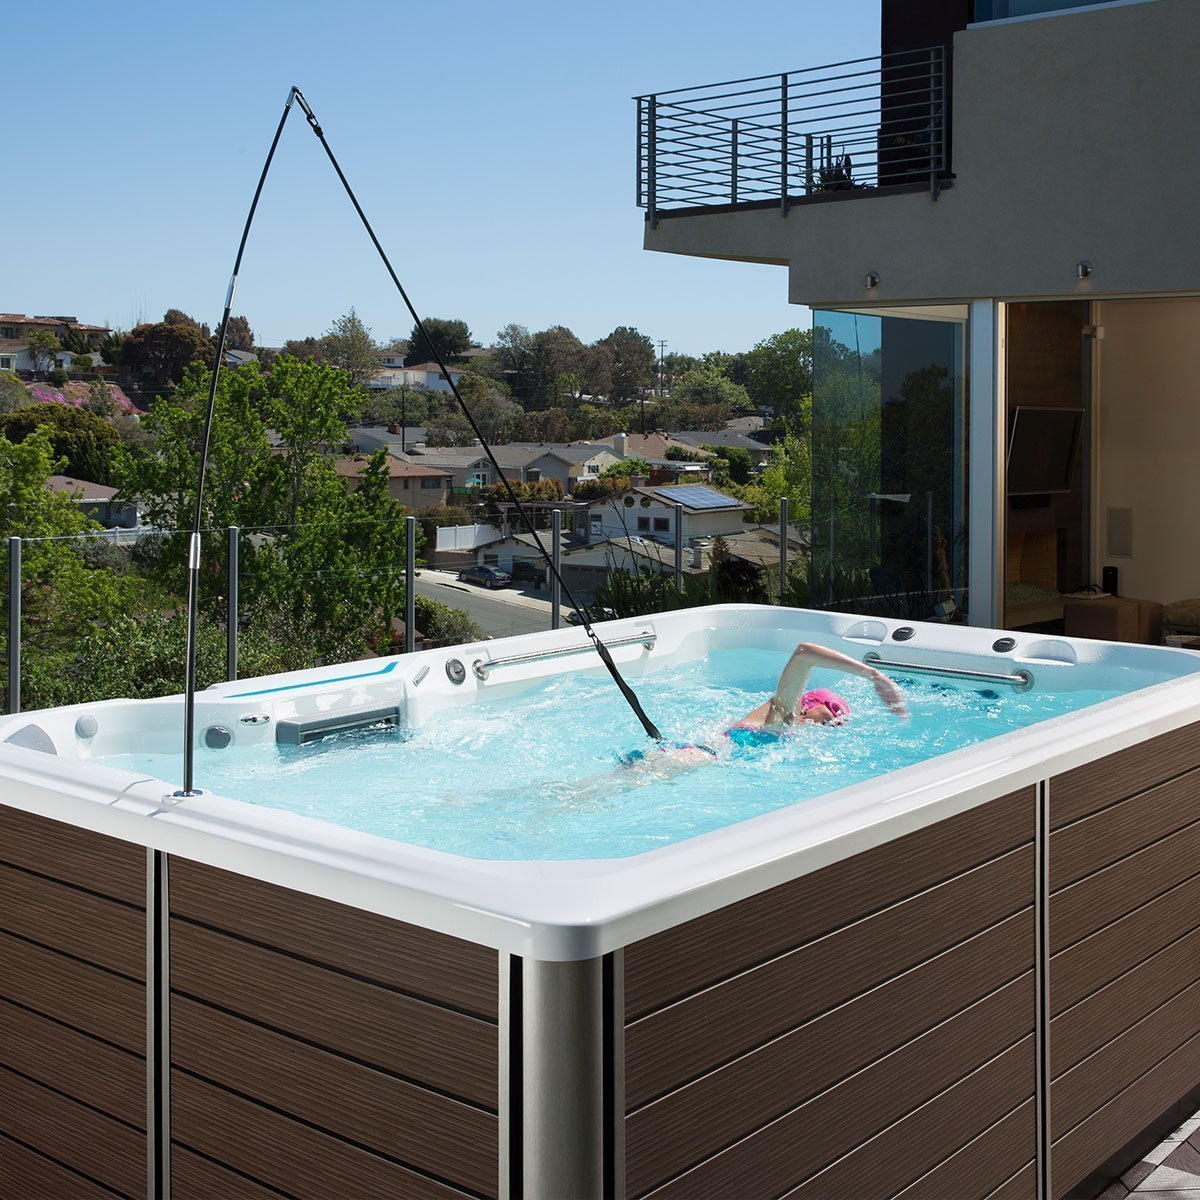 E700 Endless Pools® Fitness Systems - Maximum Comfort Pool & Spa on dryer wiring diagram, solar wiring diagram, lights wiring diagram, pool heater flow diagram, hayward pool heater diagram, deck wiring diagram, fan wiring diagram, electrical wiring diagram, hot water tank wiring diagram, pool wiring code diagrams, jacuzzi wiring diagram, pool heater installation, 5 wire thermostat wiring diagram, boiler wiring diagram, central air wiring diagram, pool heater plumbing diagram, a/c wiring diagram, heating wiring diagram, gas stove wiring diagram, spa wiring diagram,